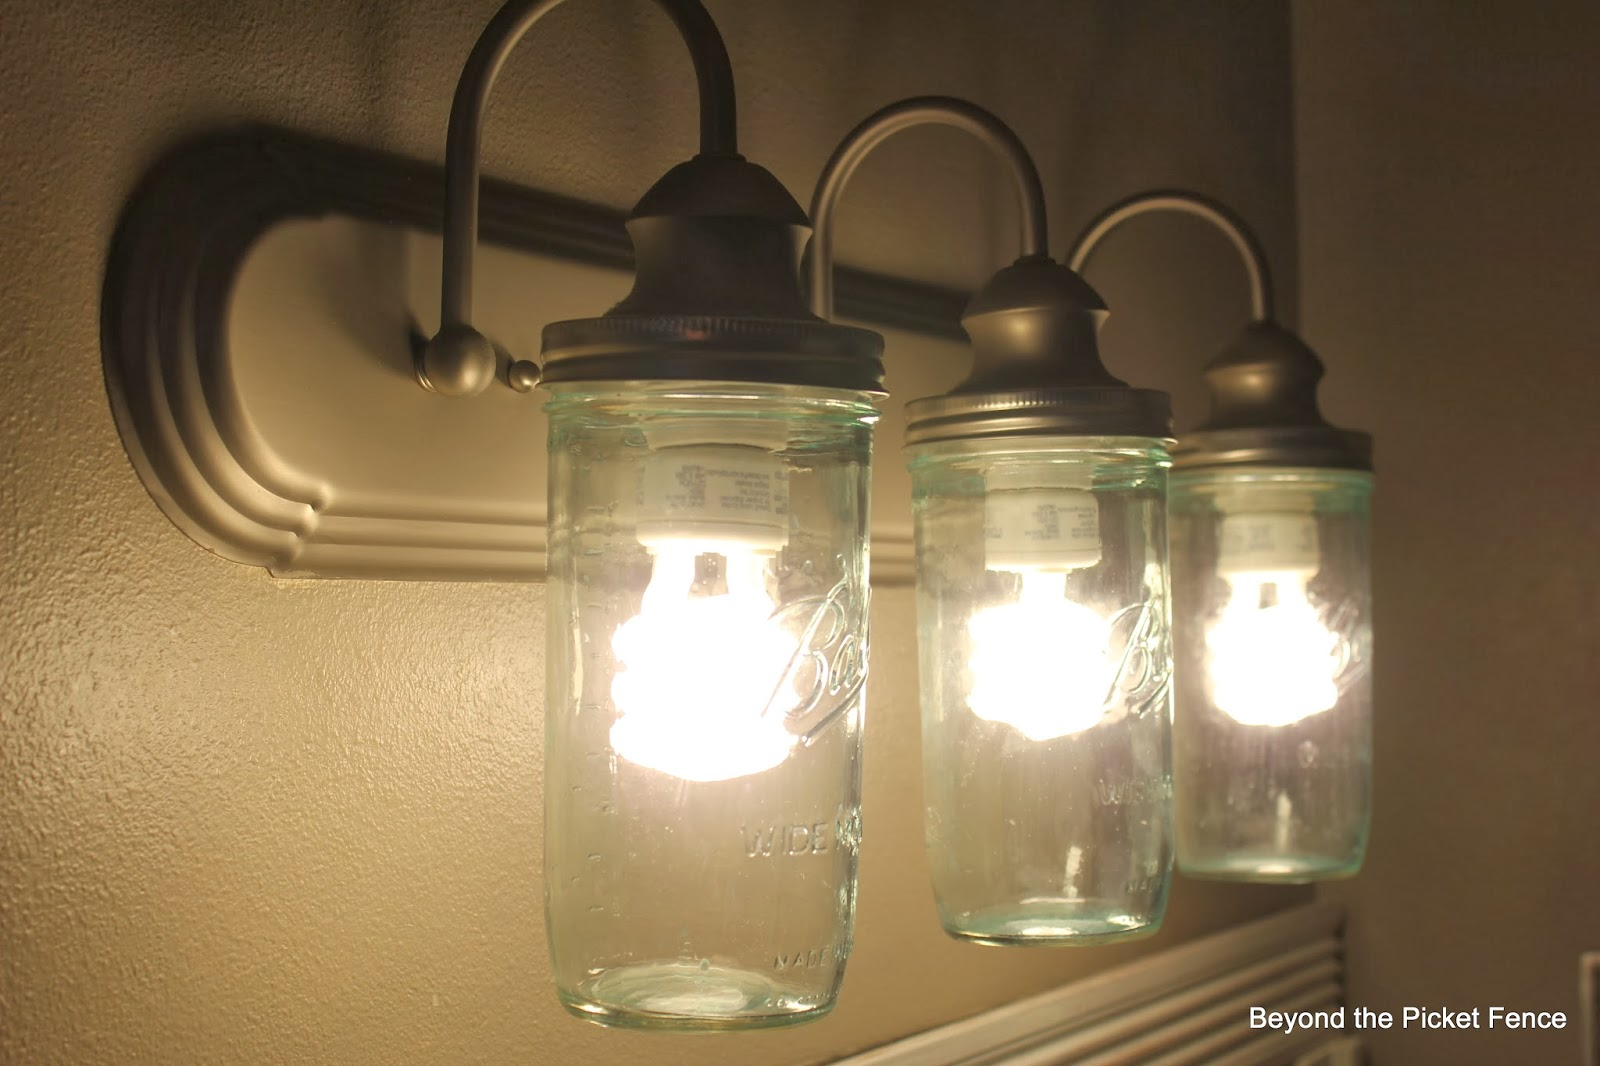 Bathroom Lighting Lights Fixtures: Beyond The Picket Fence: How To Makeover A Bathroom For